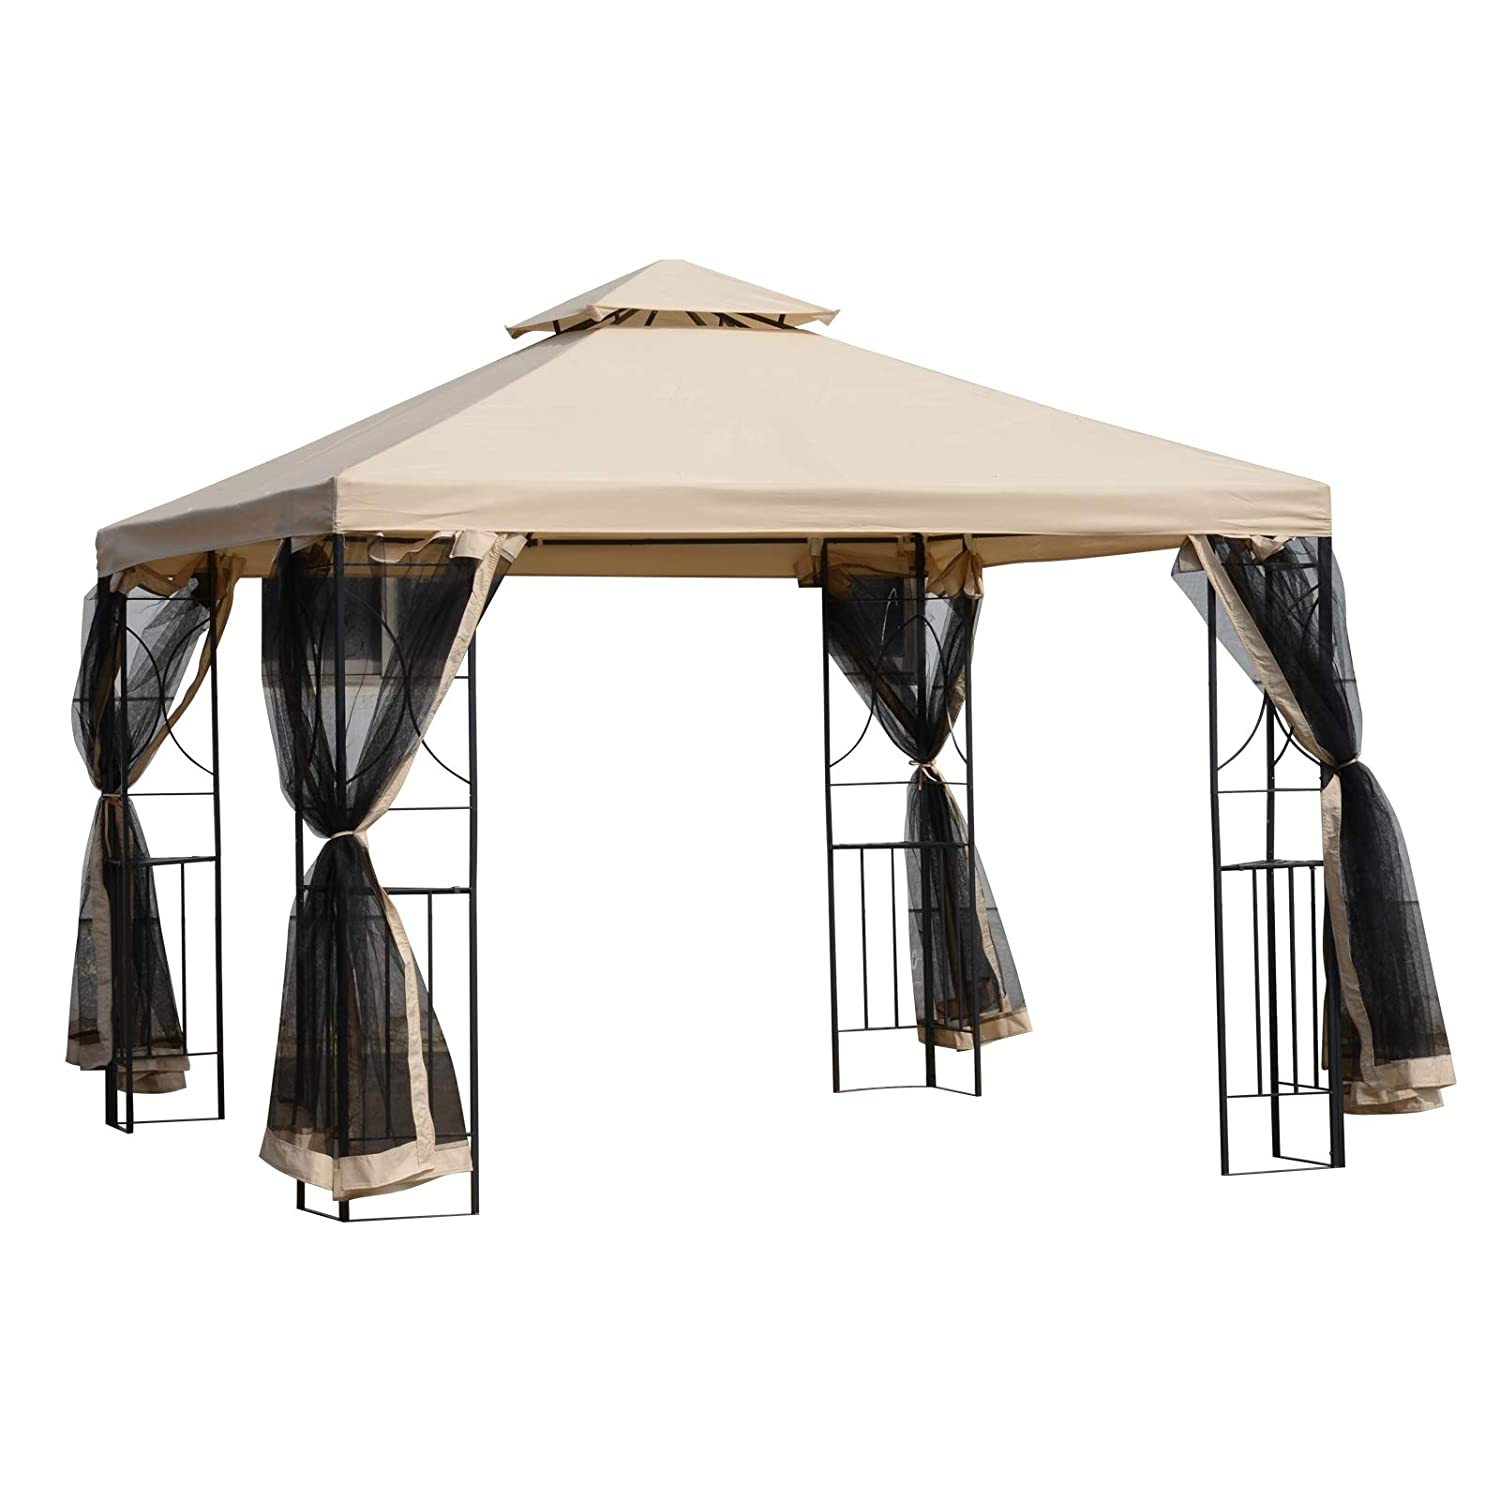 Sand Outsunny 10 x 10/' Steel Fabric Square Outdoor Gazebo with Mosquito Netting